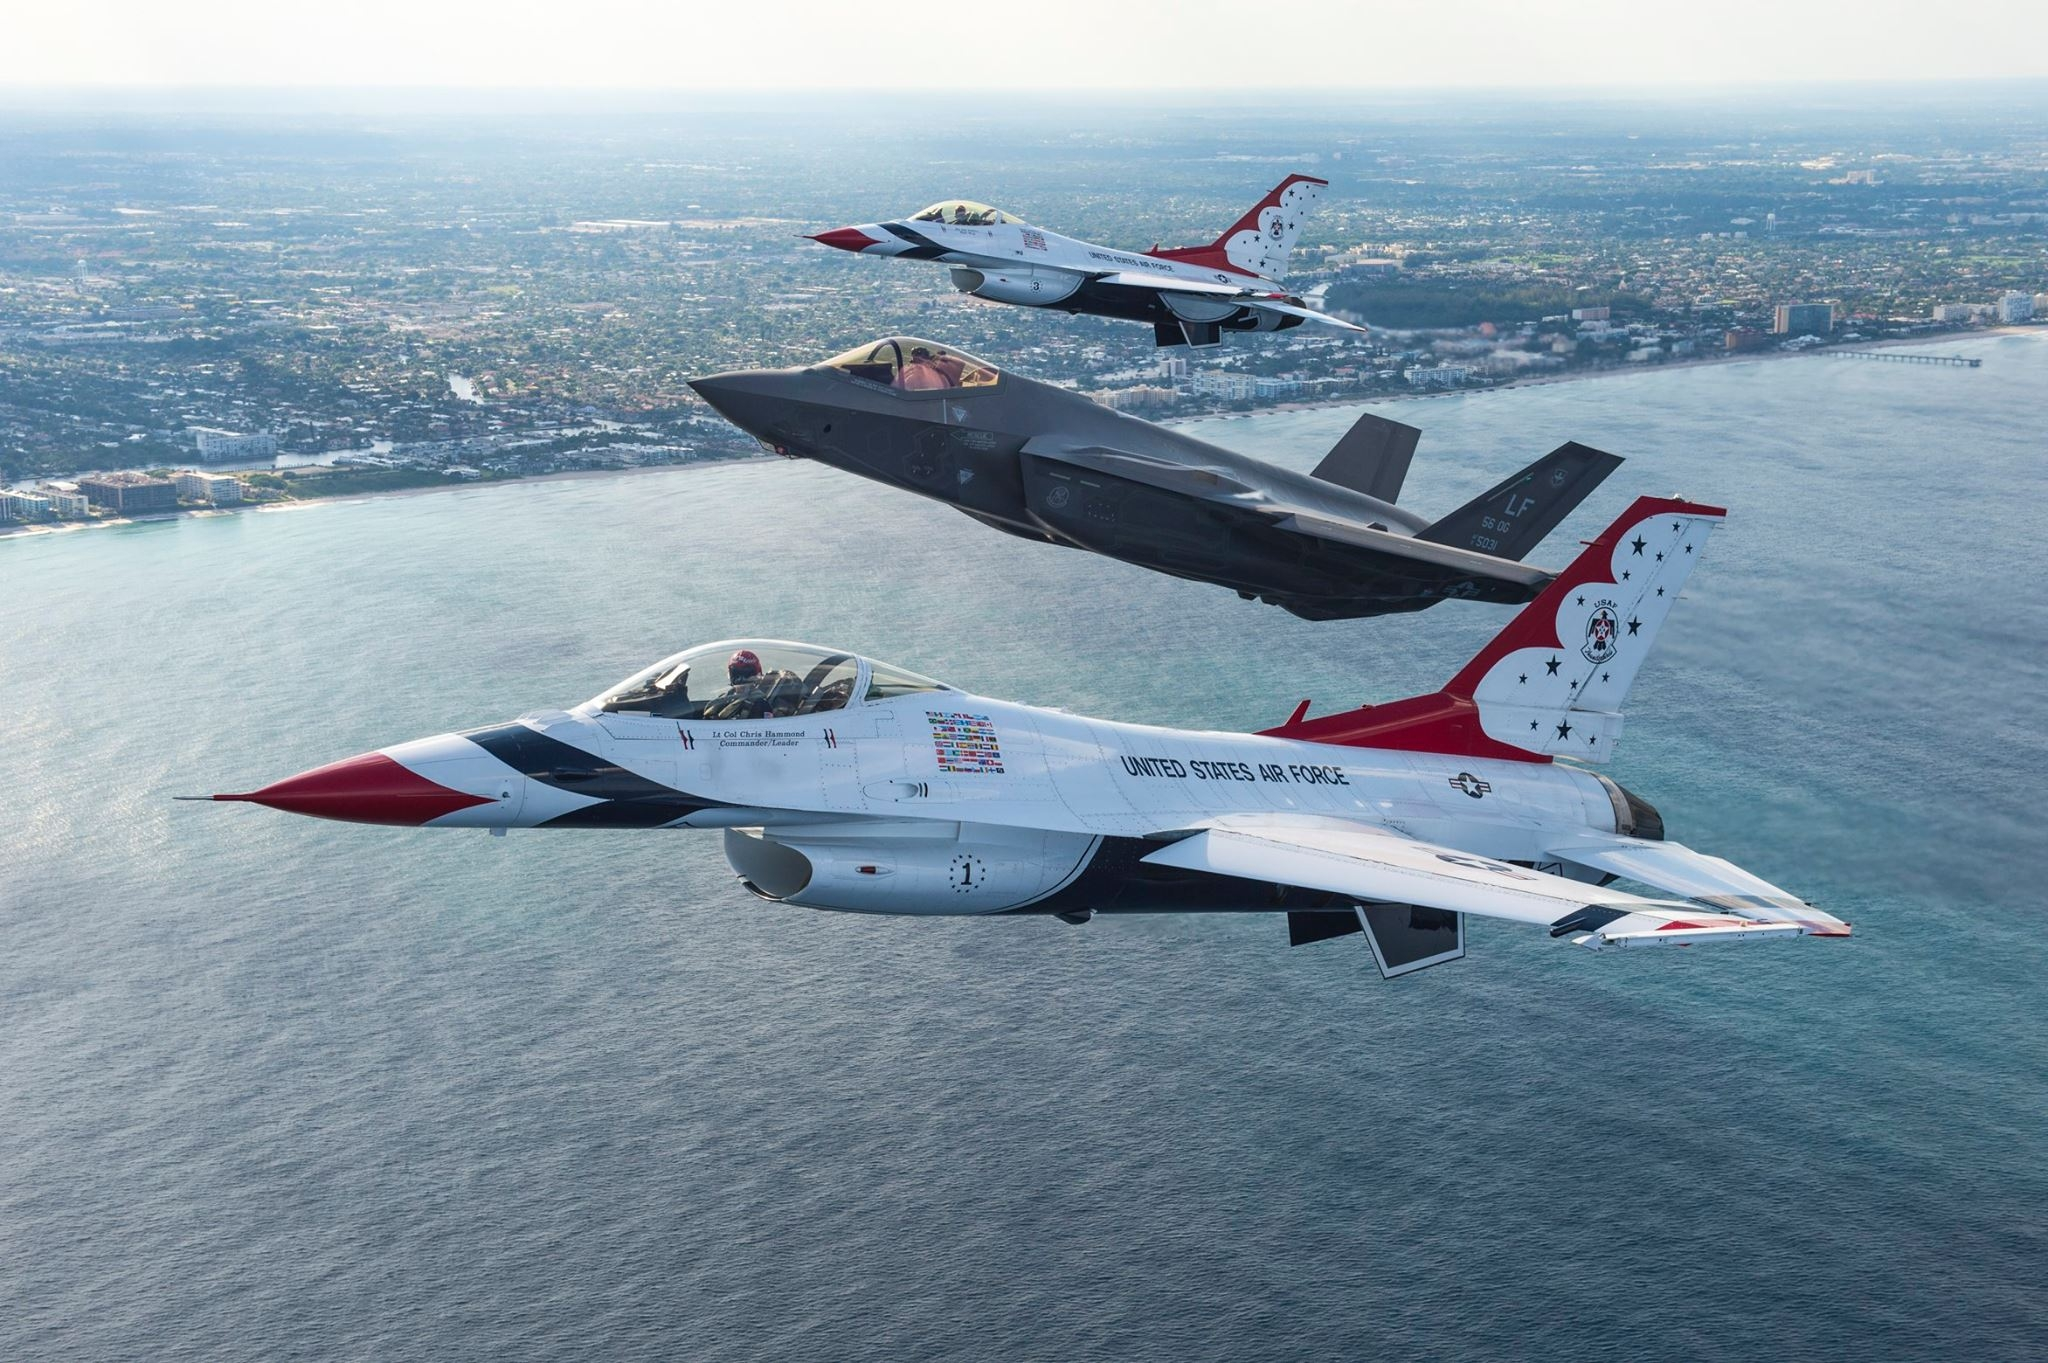 Thunderbirds and F-35A Lightning II in formation flight over Fort Lauderdale. Photo USAF